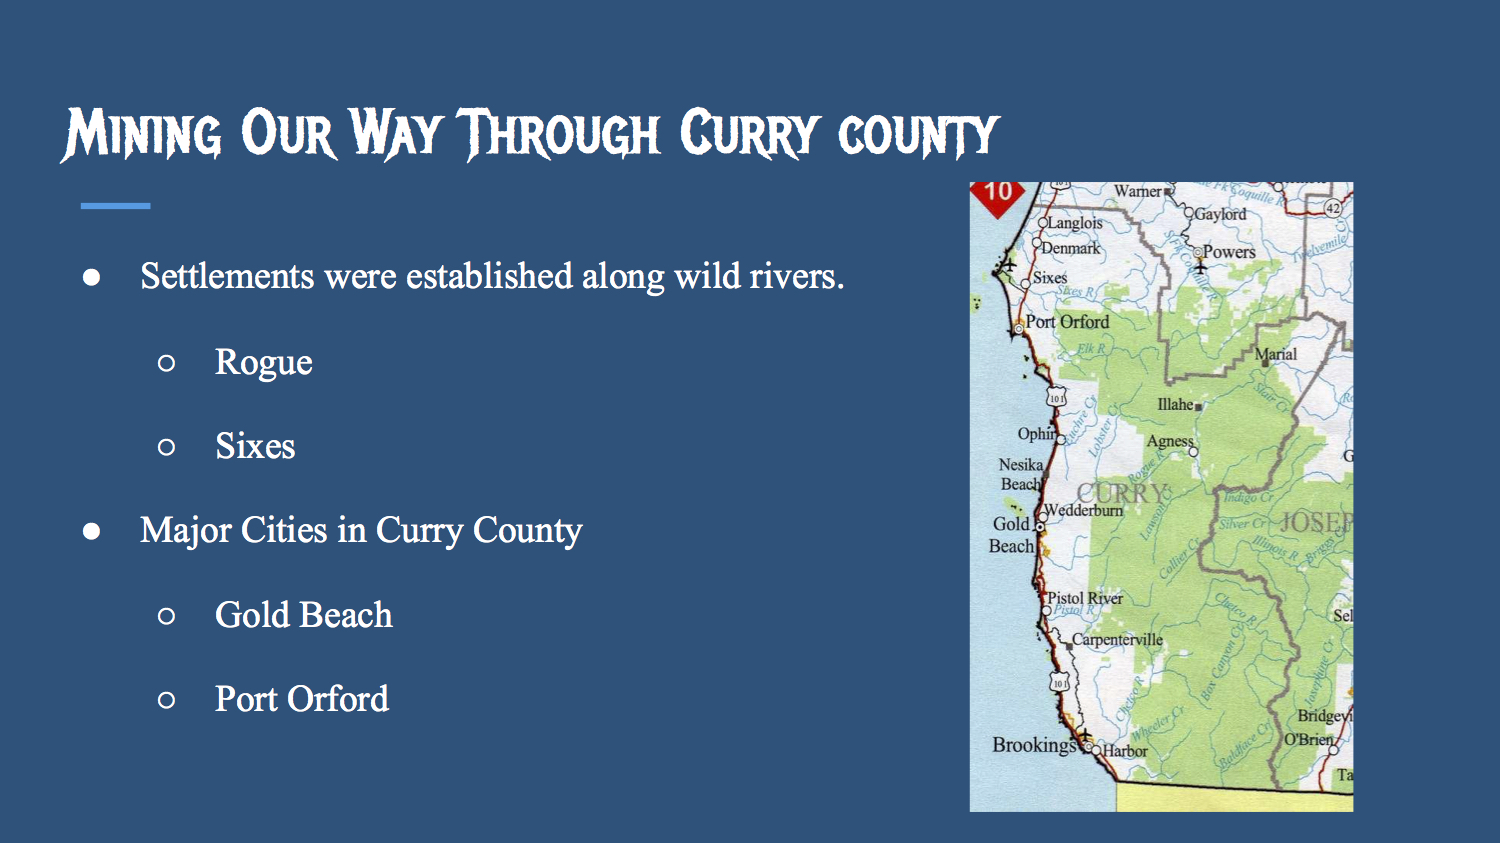 Mining Our Way Through Curry County